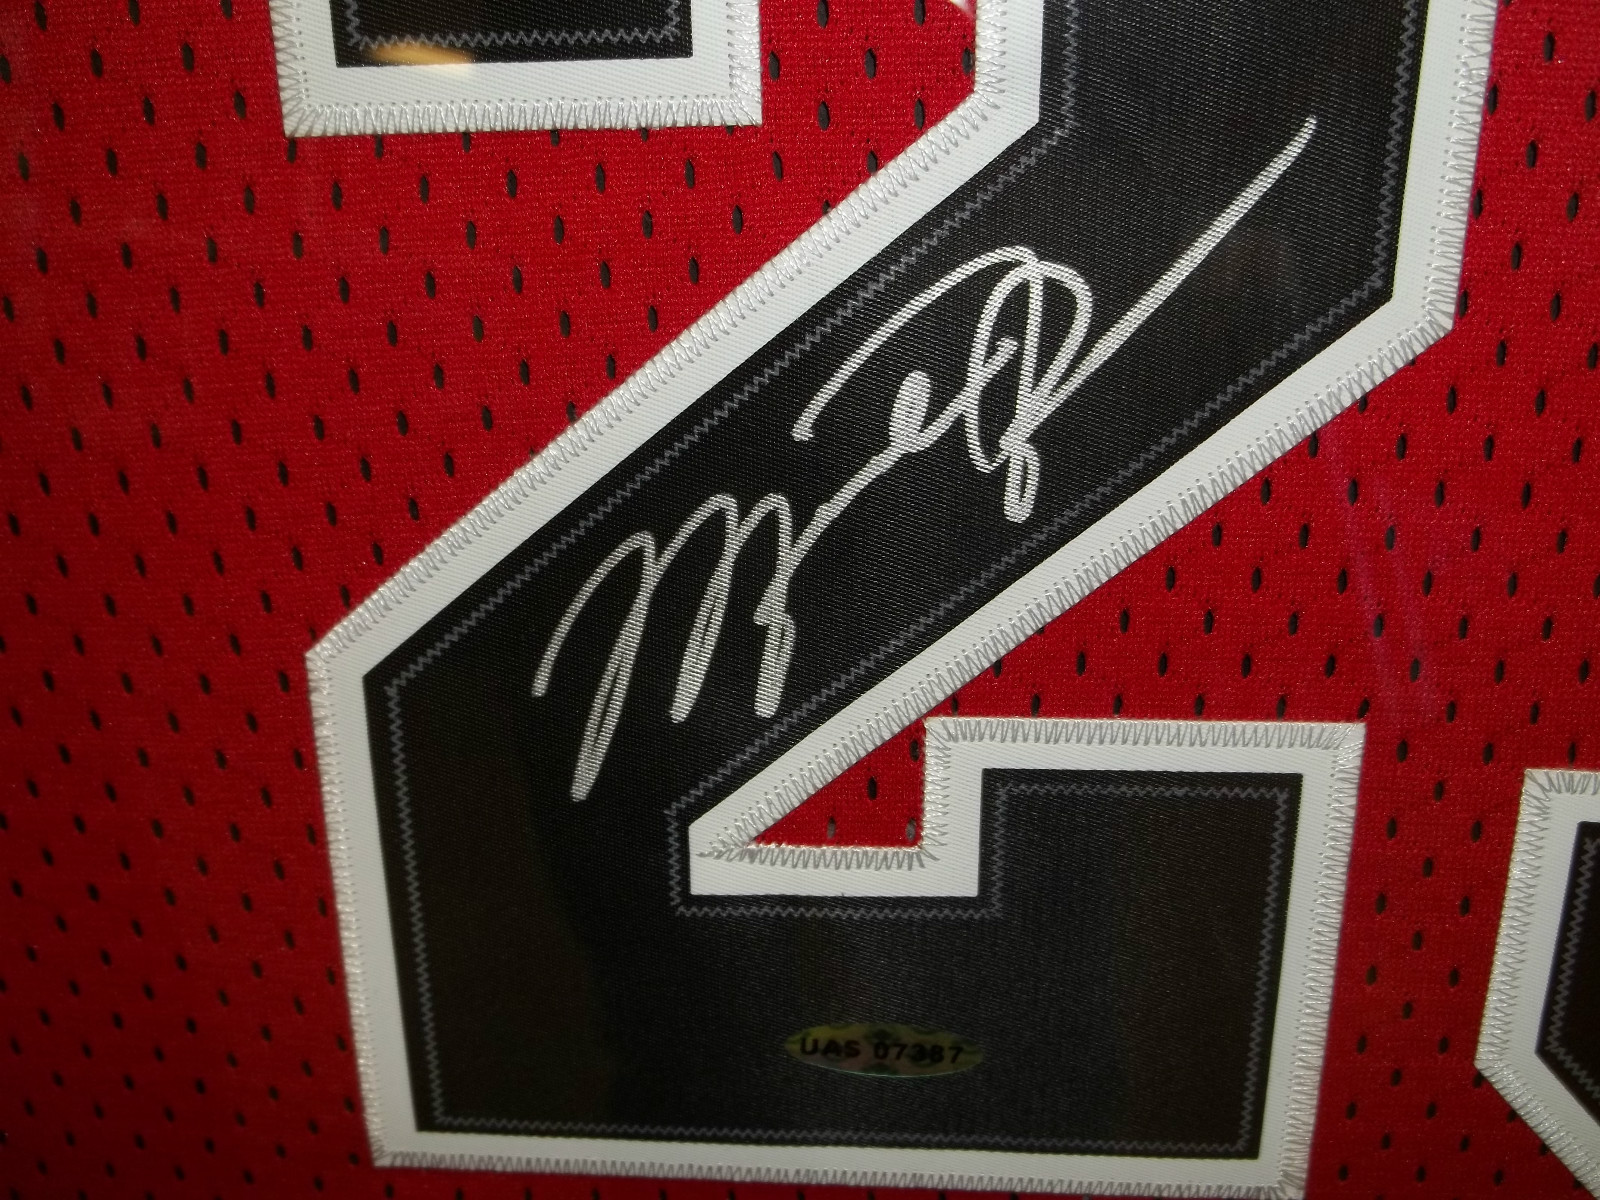 f3ed06d307d Signed Jersey Pricing: Active Listings for Michael Jordan Signed Jerseys